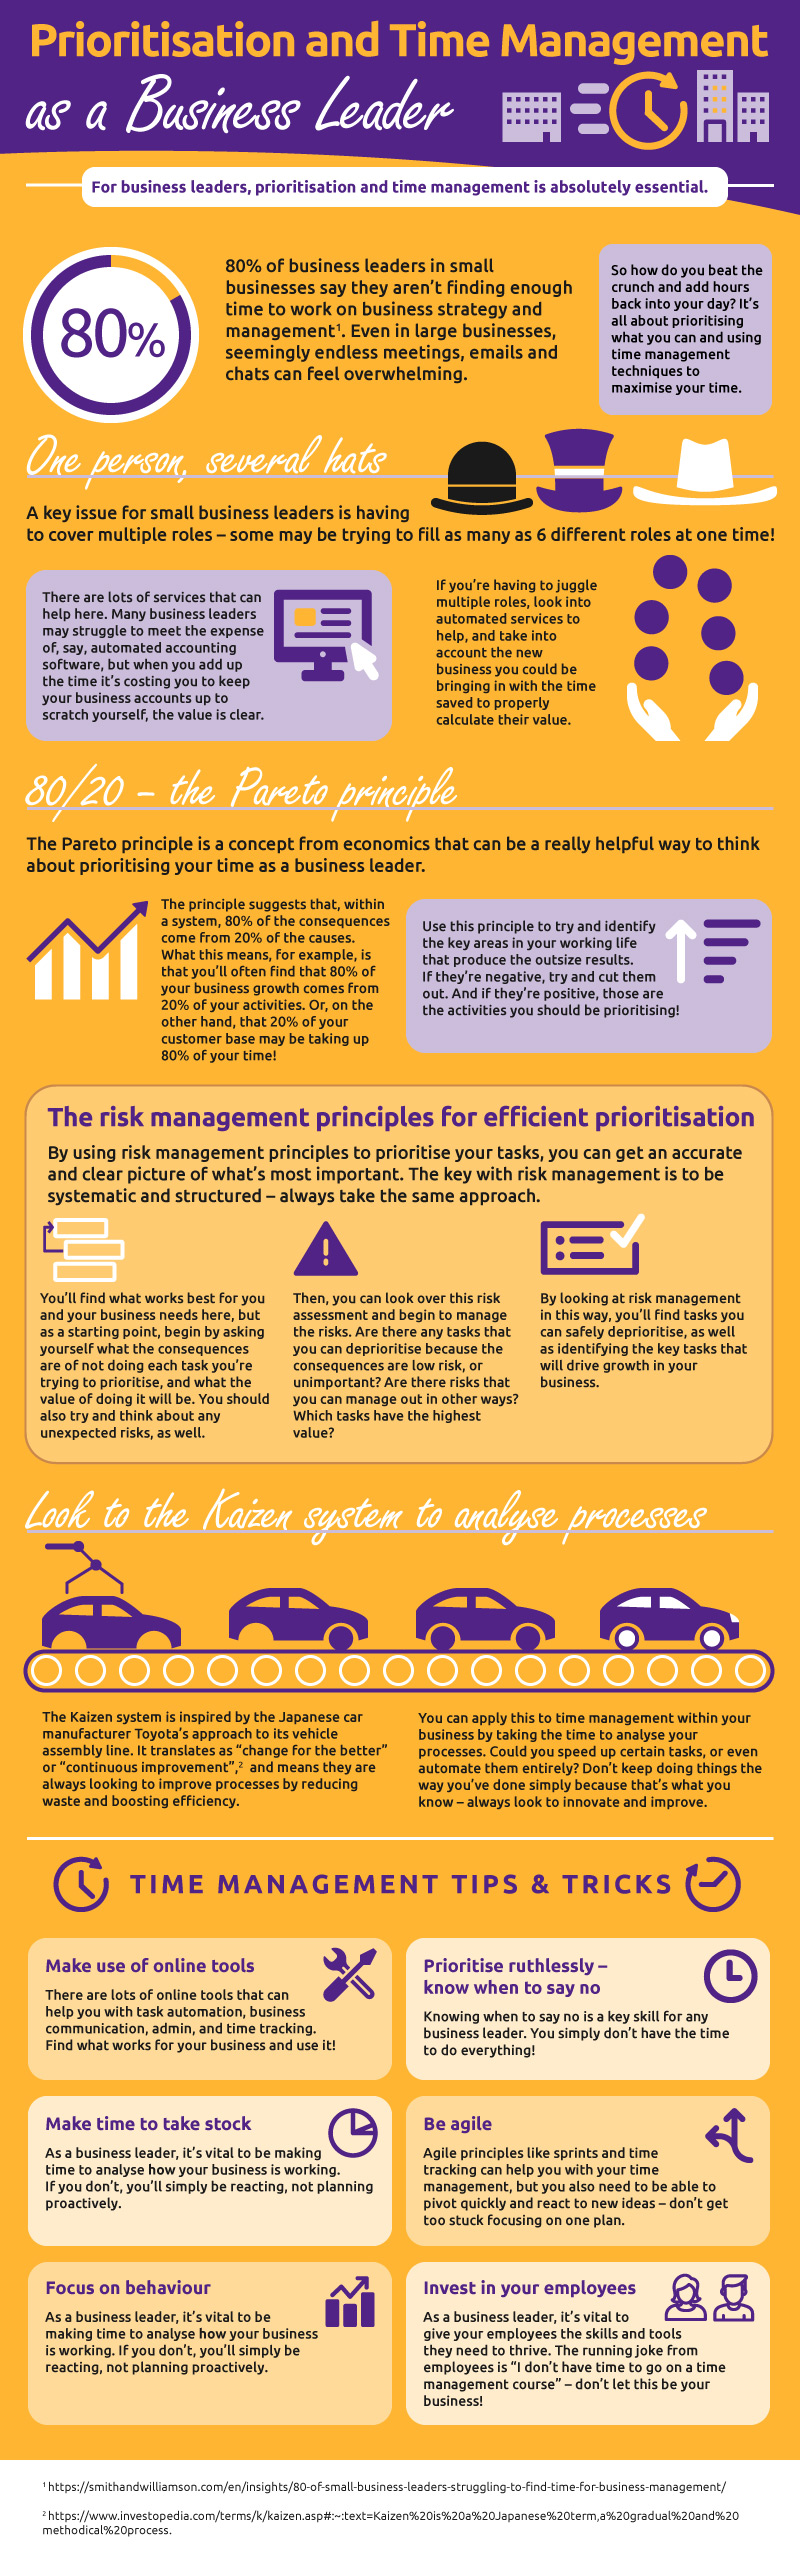 infographic on prioritisation and time management as a business leader